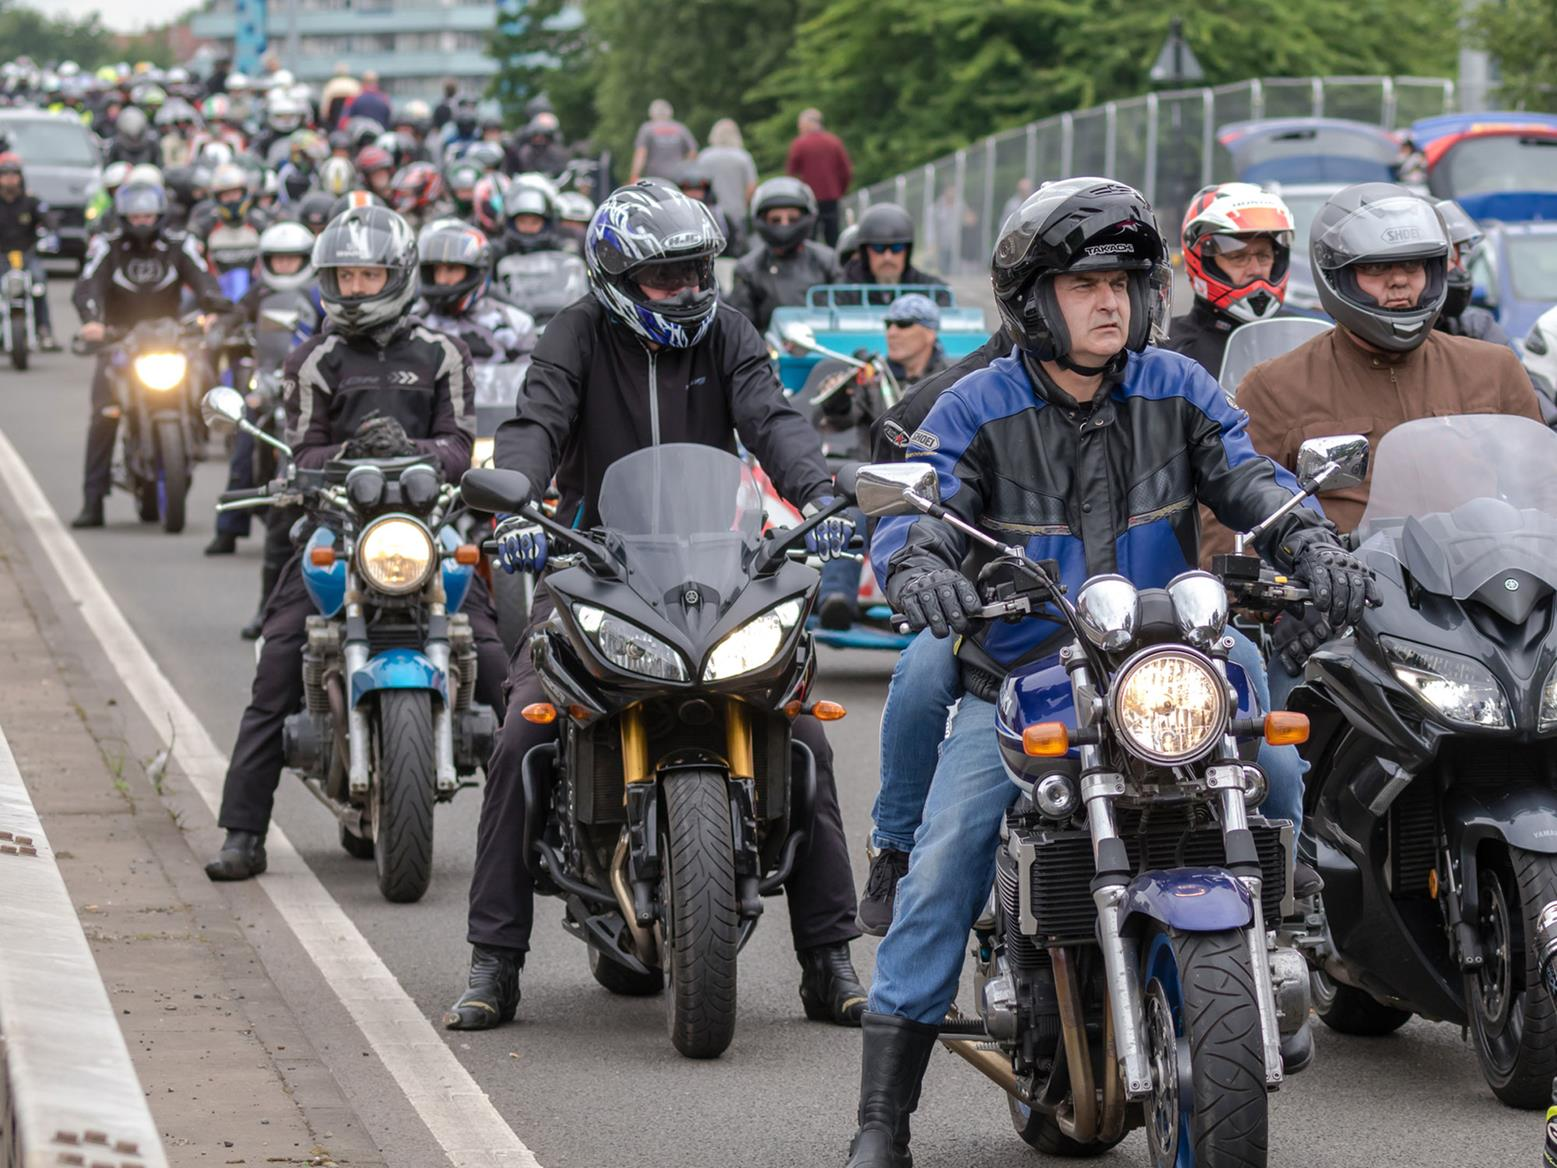 Expect hundreds, if not thousands, of bikers at Coventry Motofest 2019